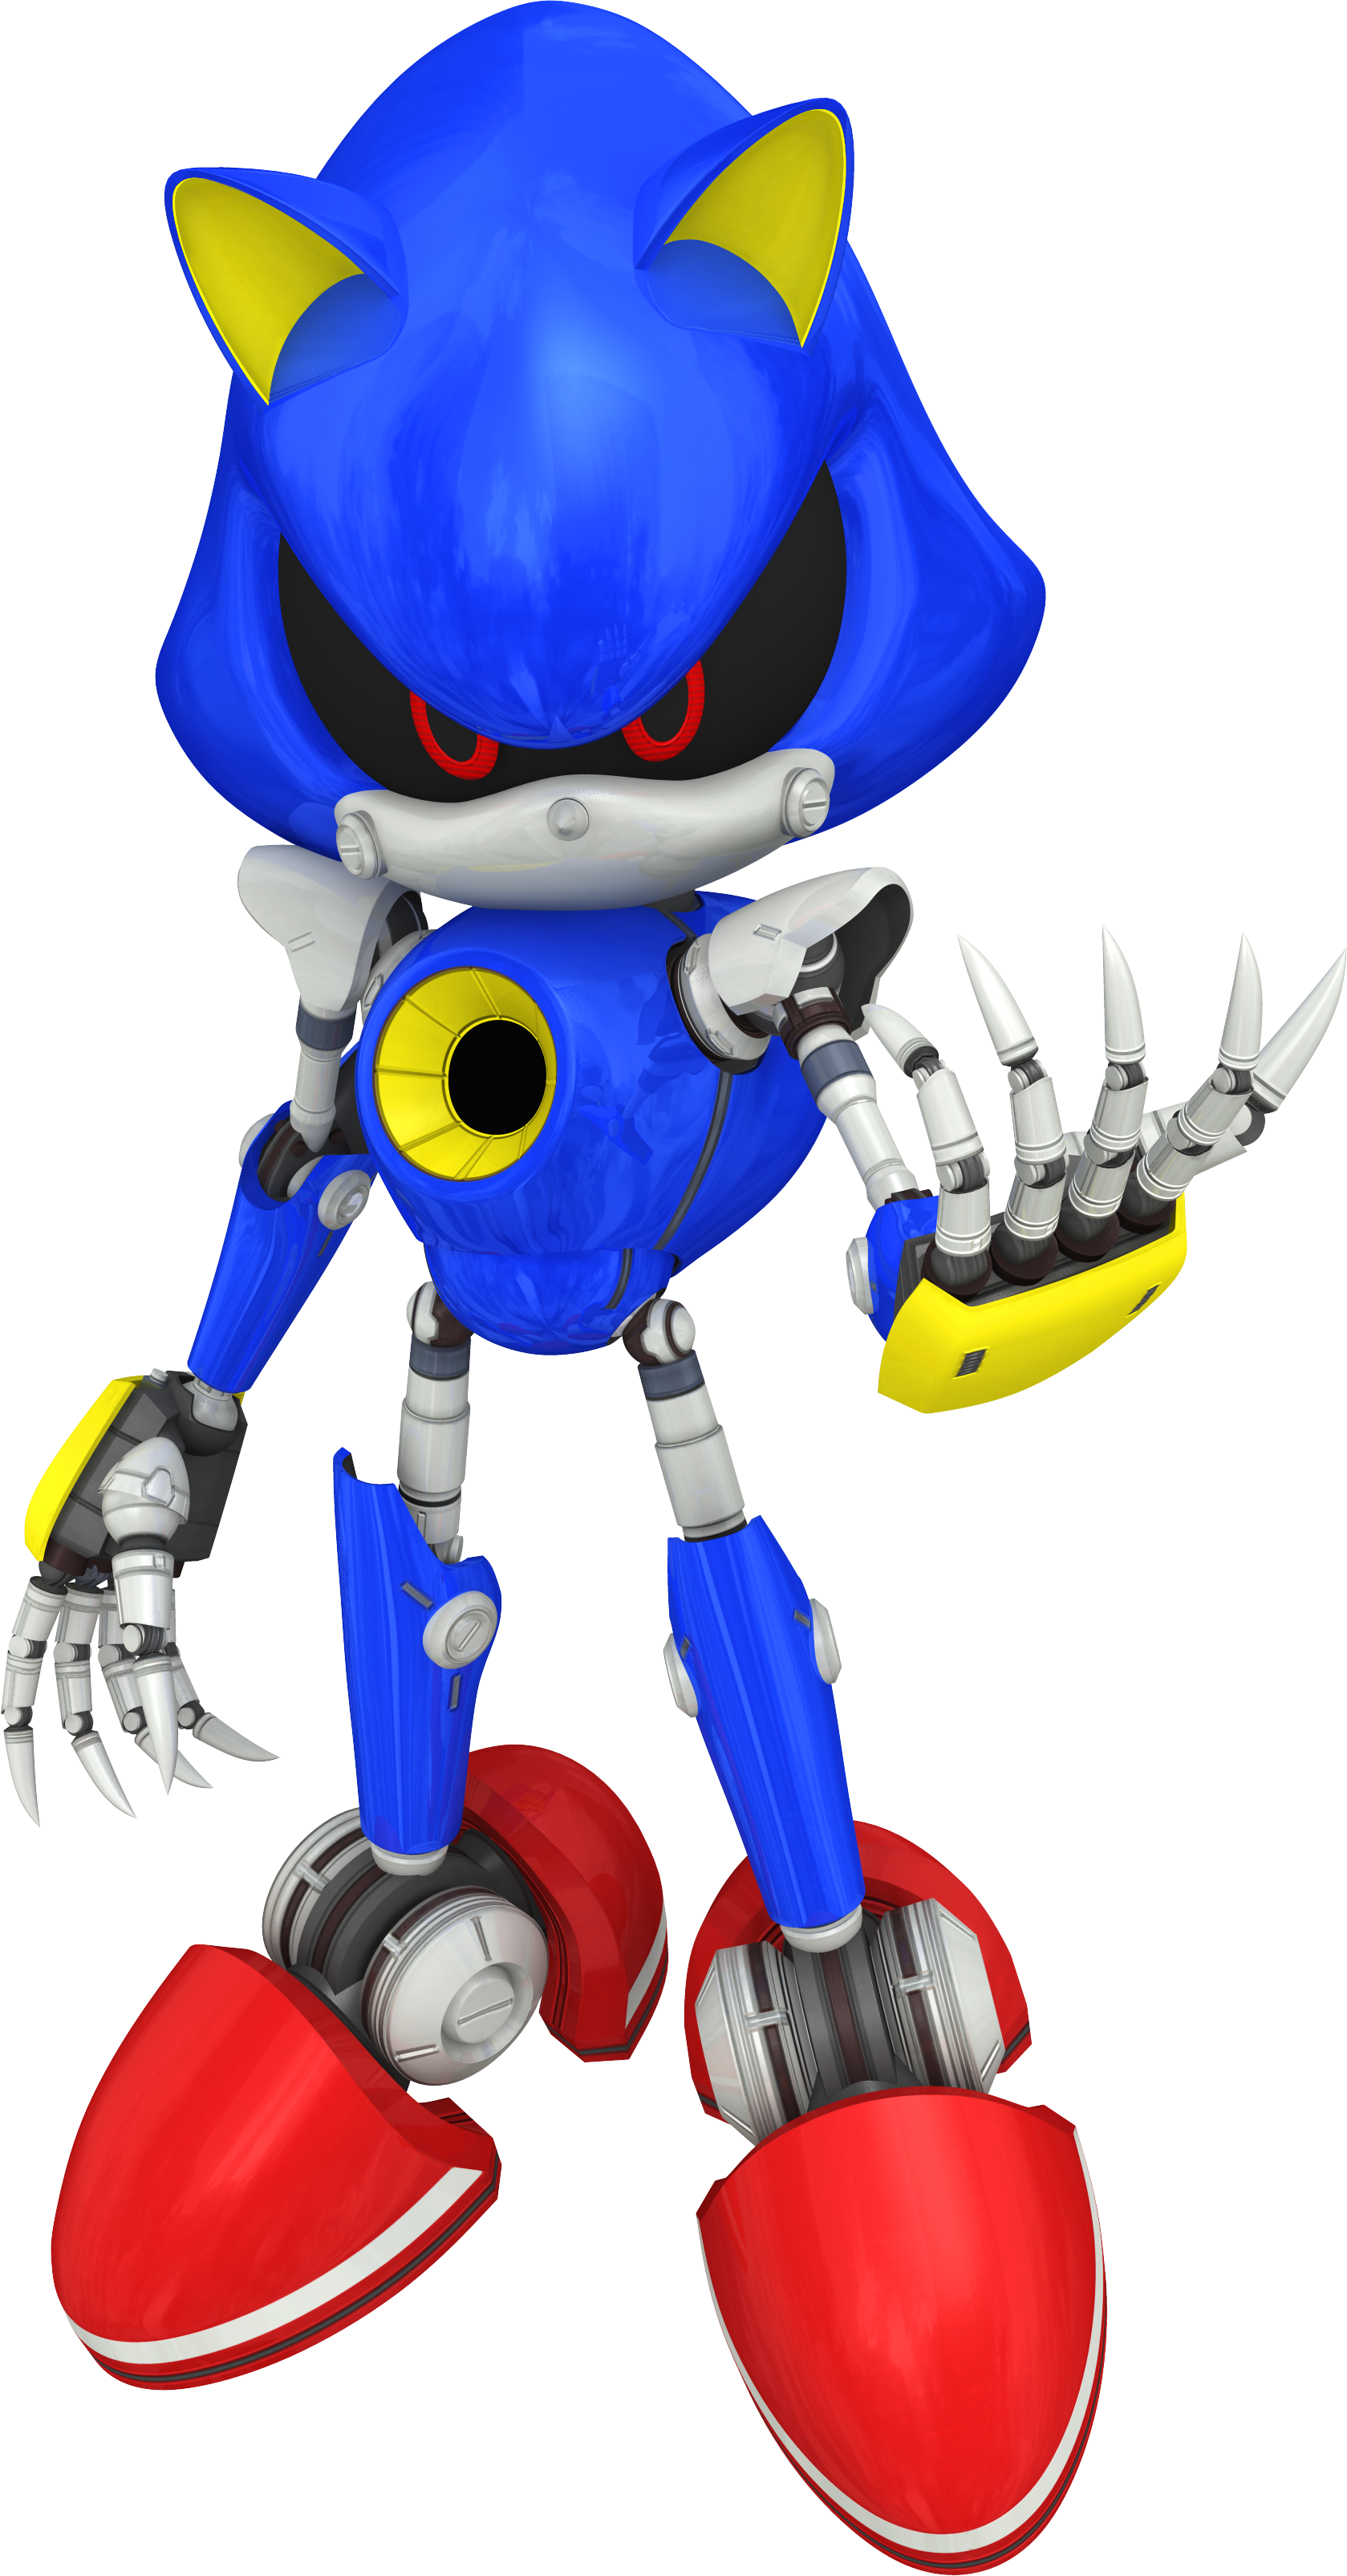 Sonic-Free-Riders-Metal-Sonic-artwork.pn